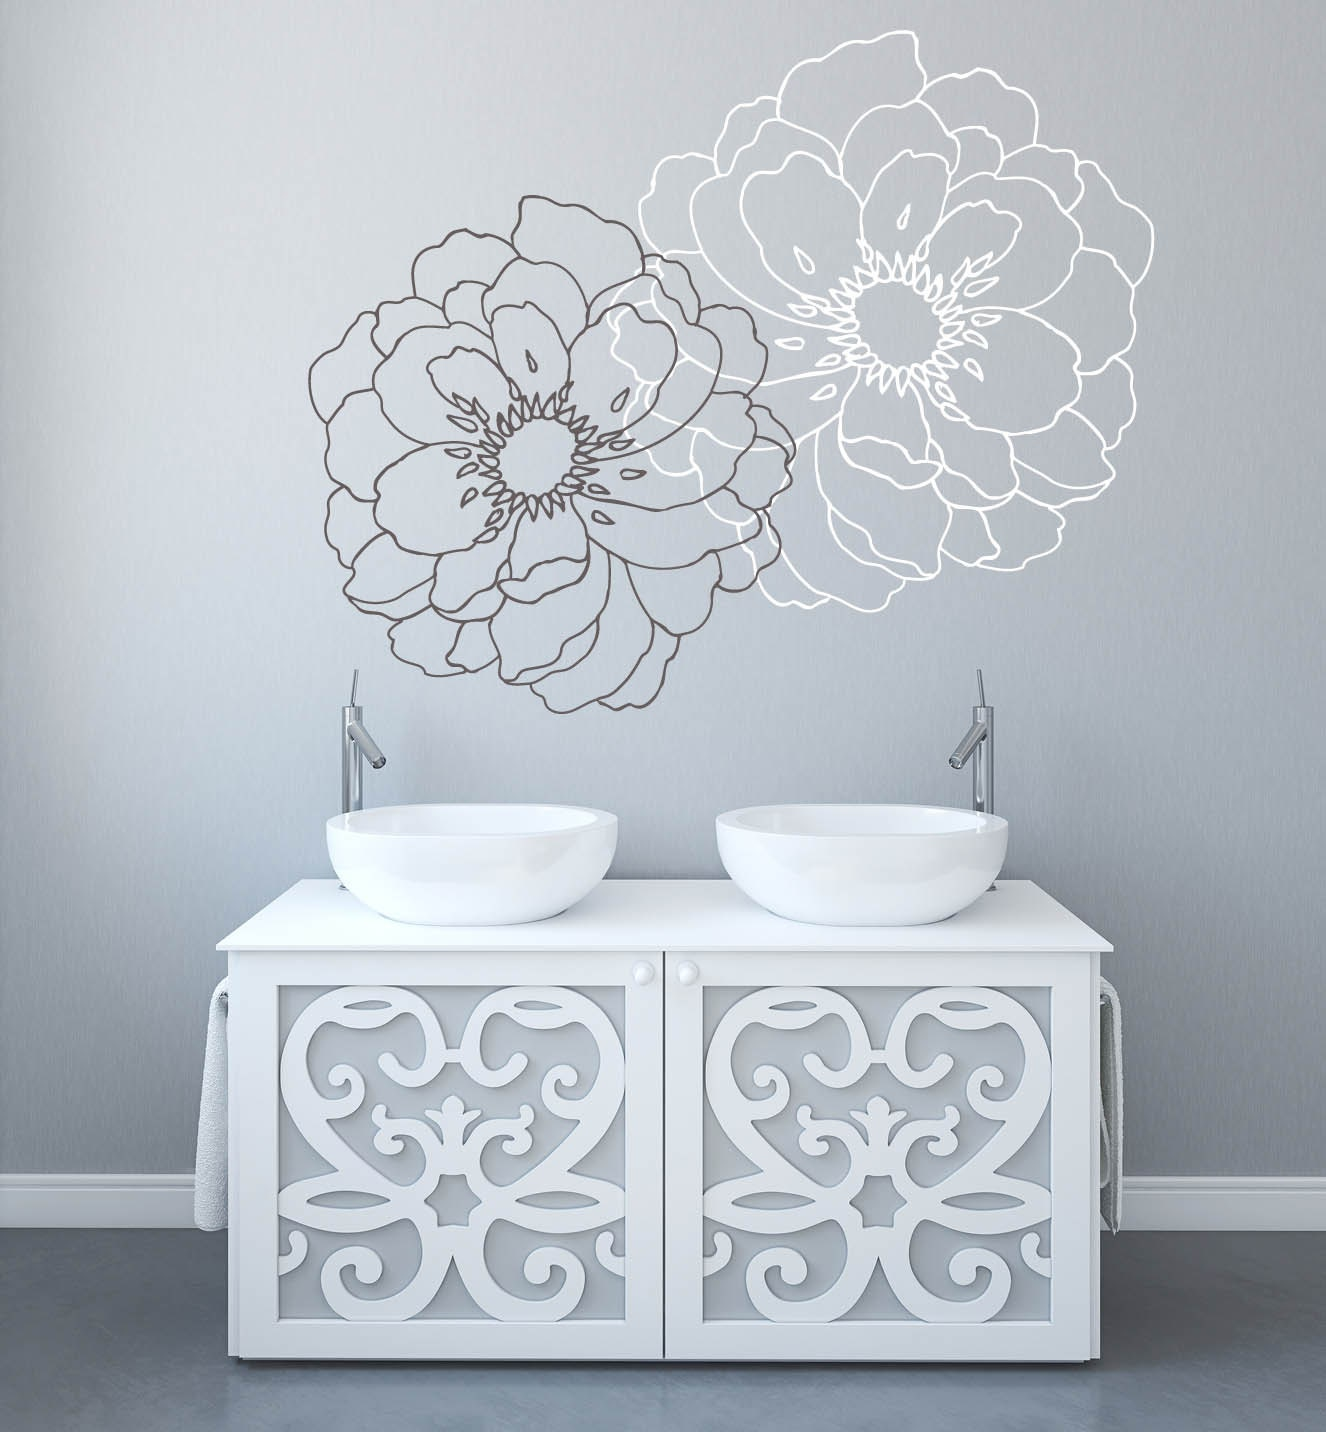 Modern Wall Decor Decals : Modern flower wall decals for walls stickers